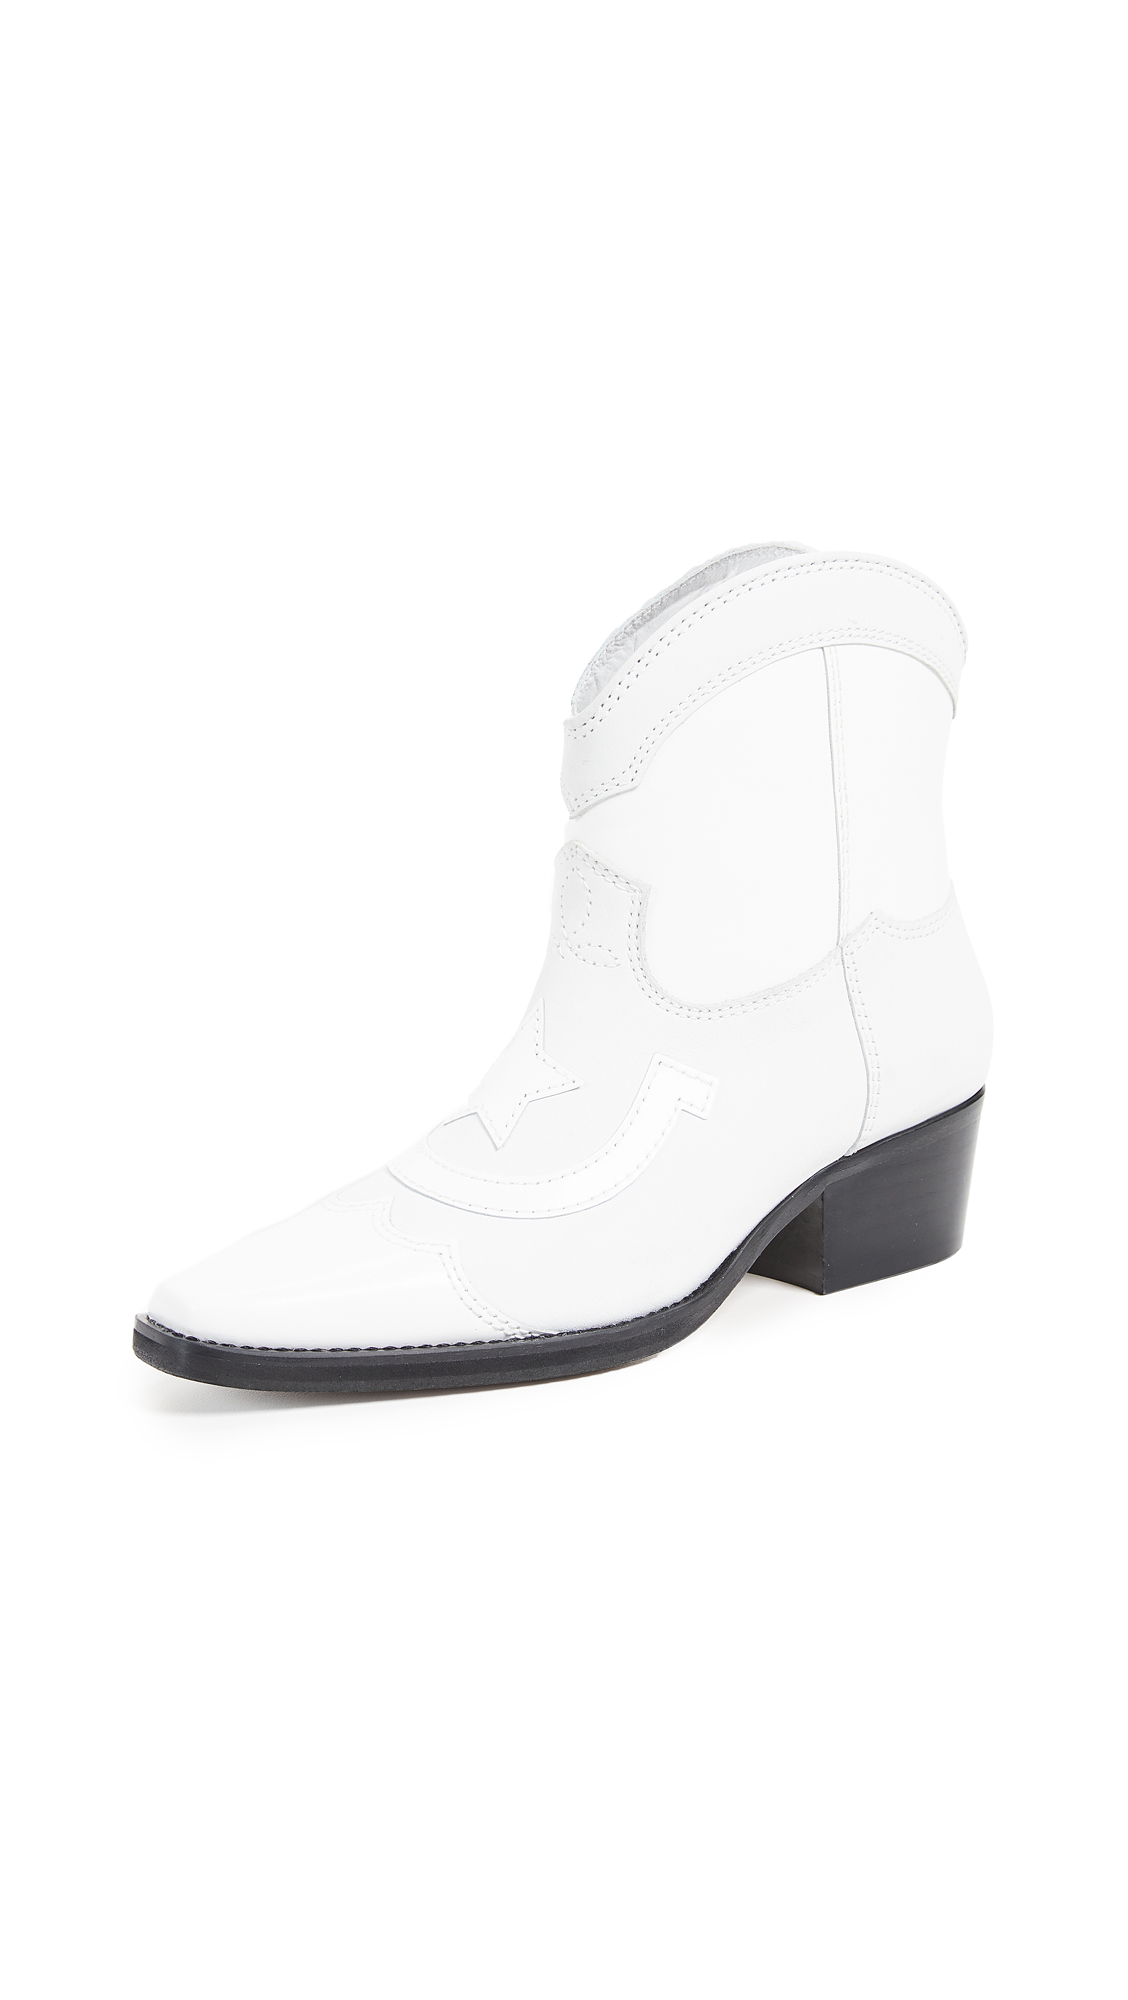 GANNI Low Texas Boots - Bright White